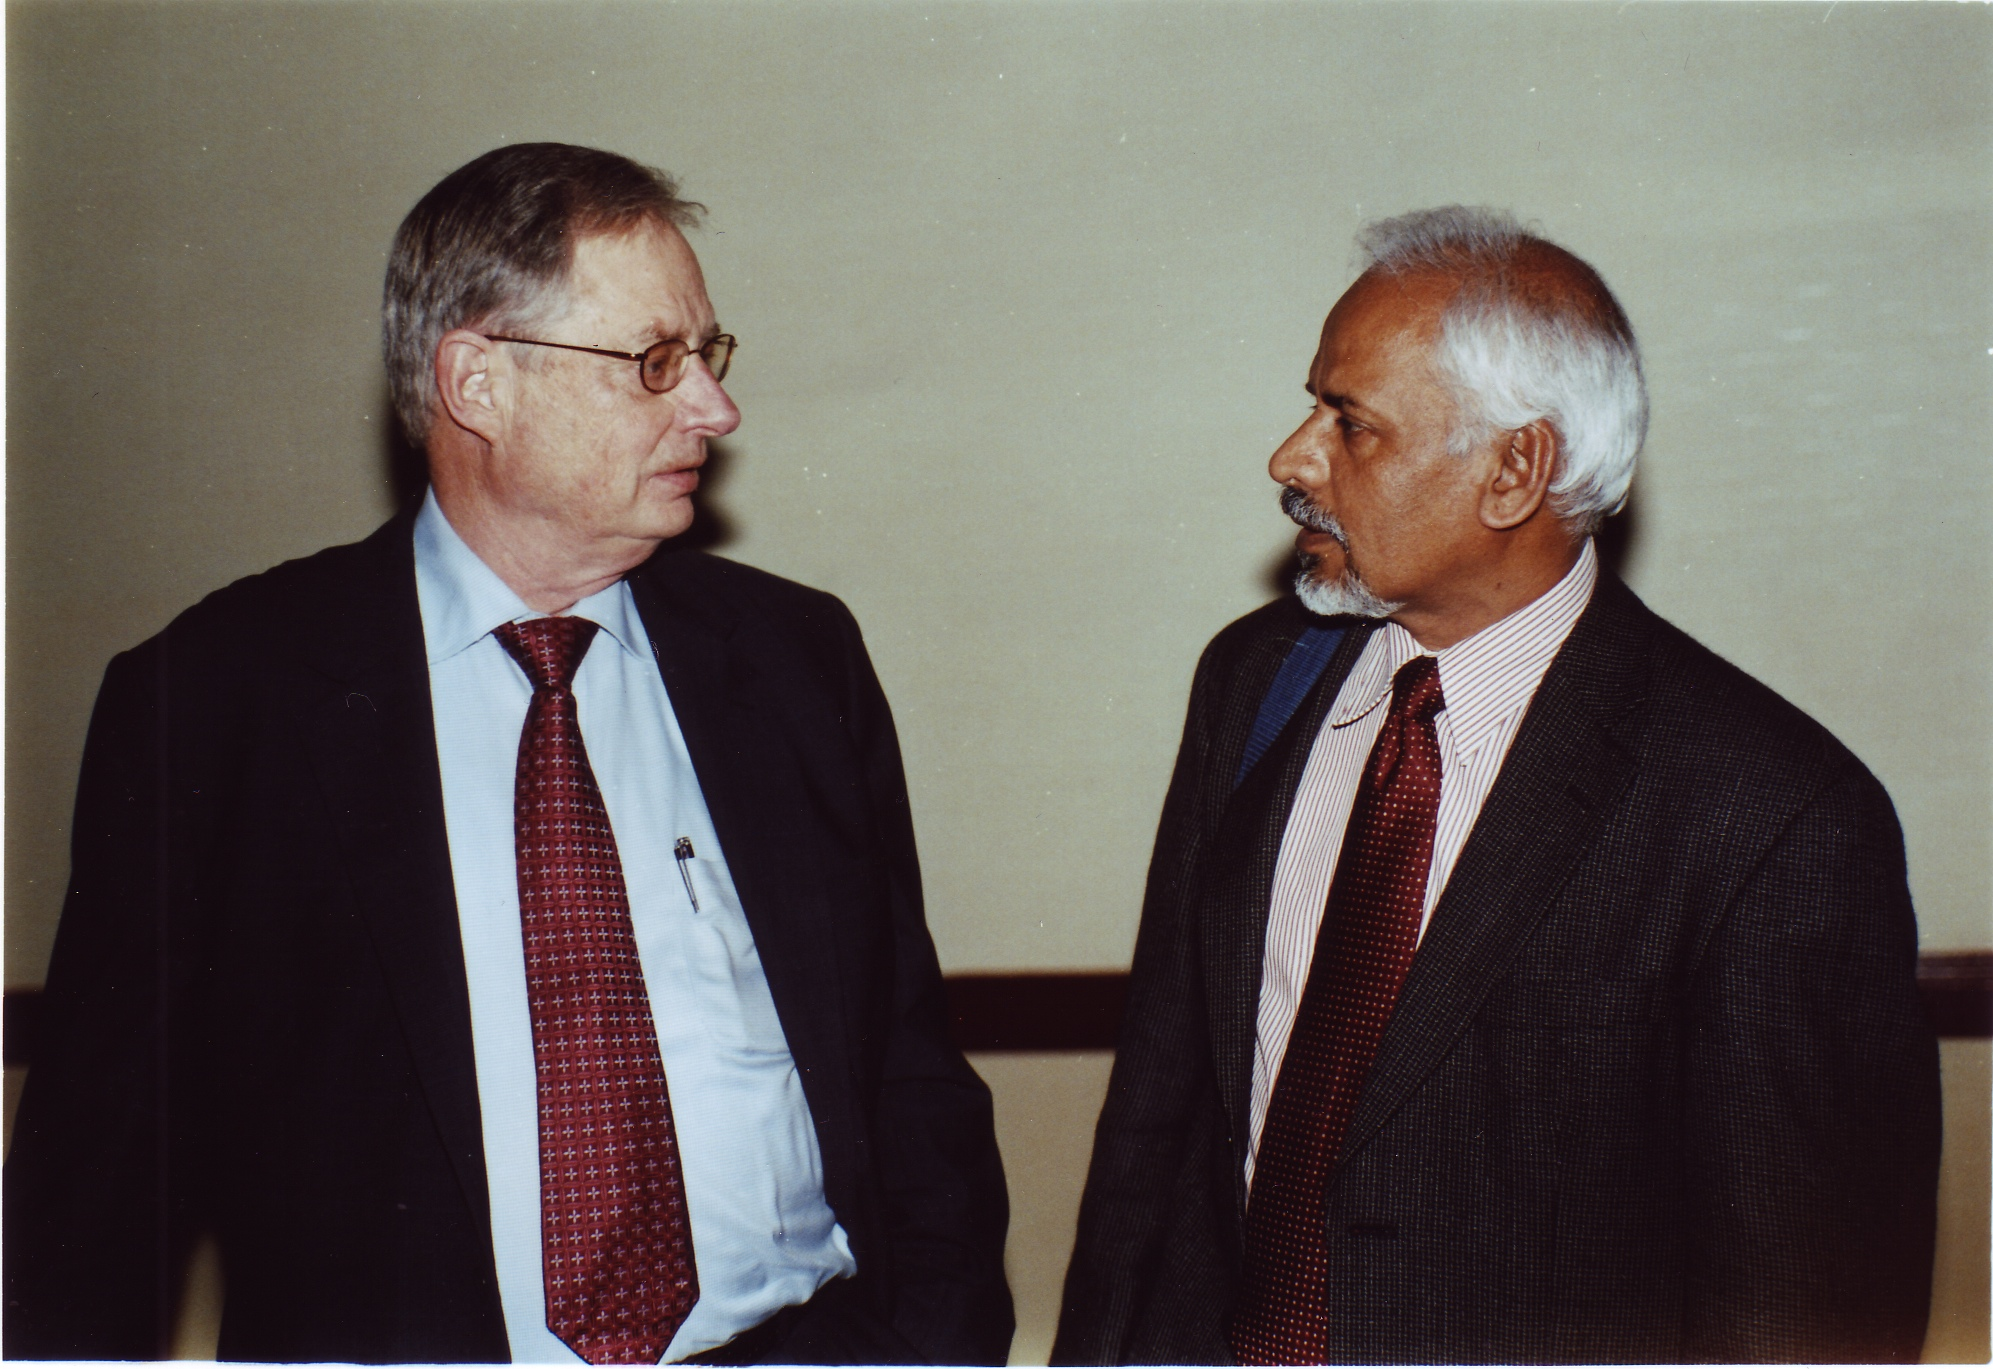 Griffith, Phillip A. and K.R. Sreenivasan